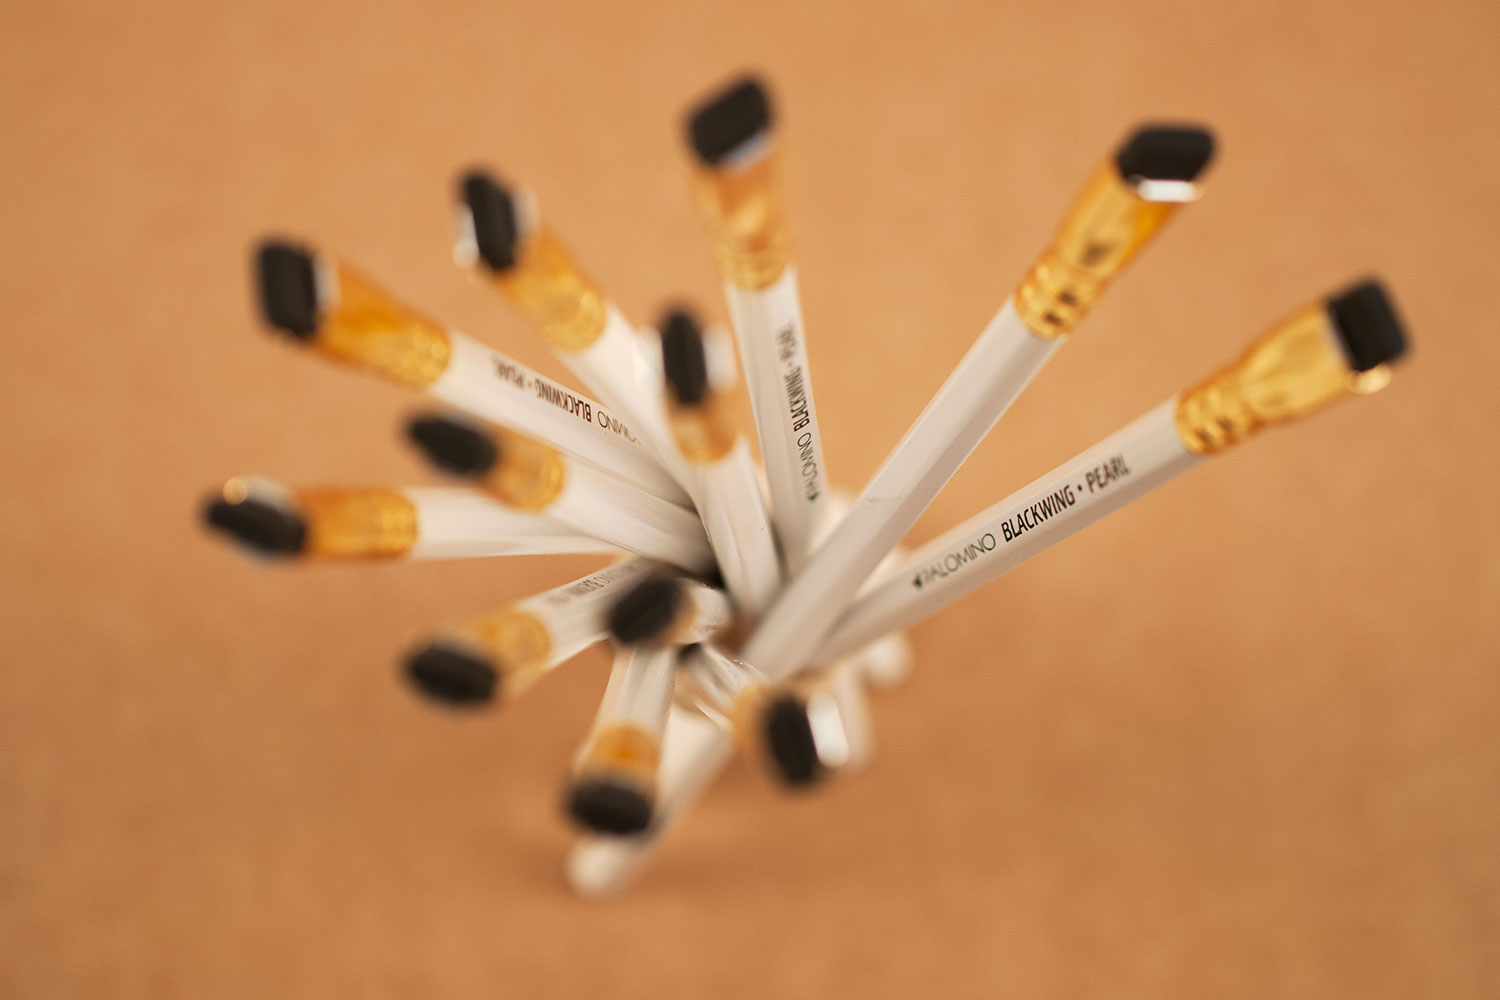 Stationery Classic - Blackwing Pearl Pencil